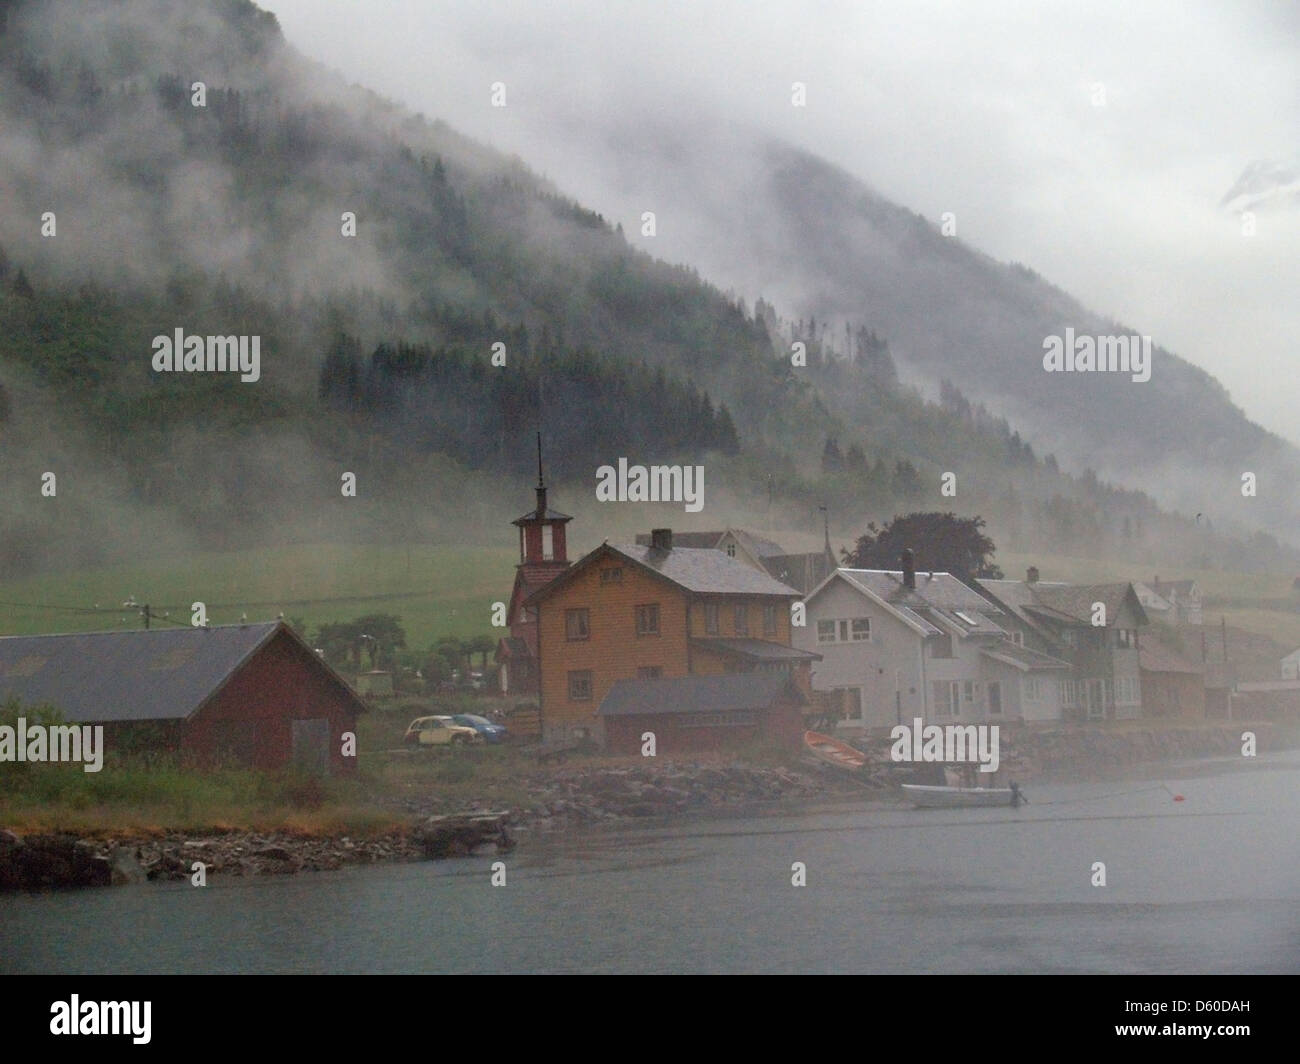 A fog shrouded Fjaerland,Norway - Stock Image